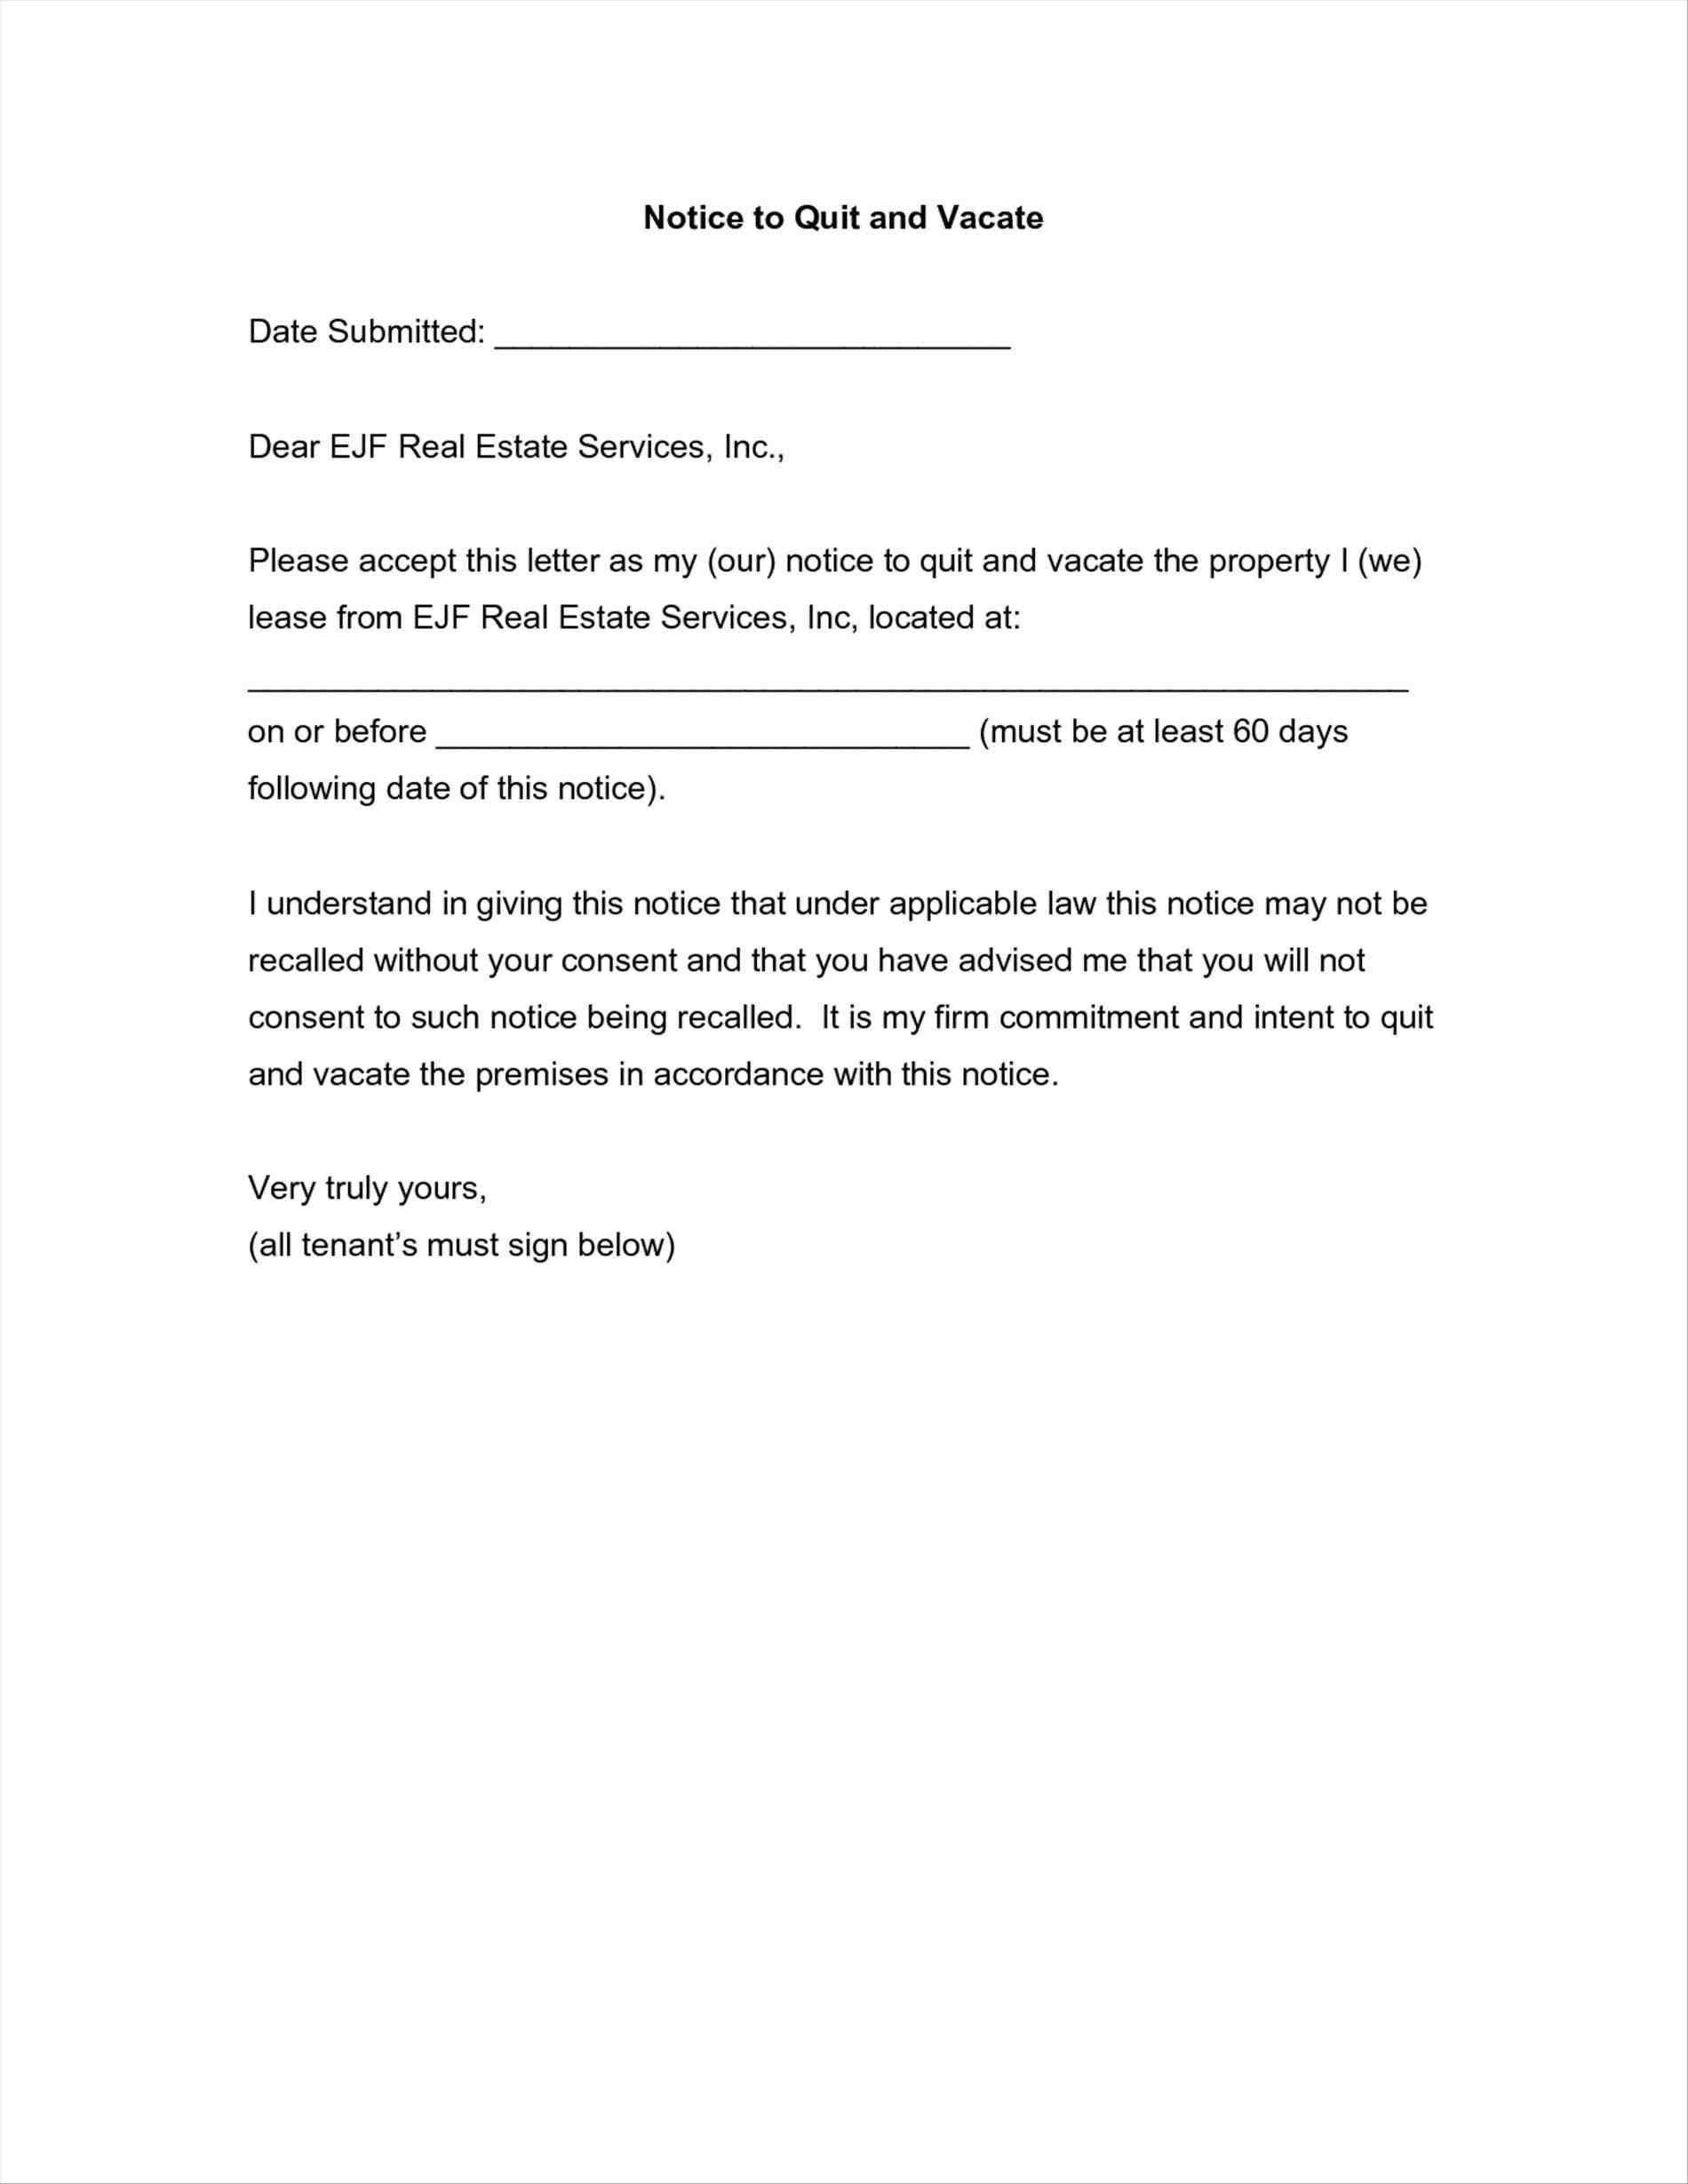 Renters Insurance Letter Template - 60 Day Notice Apartment Template